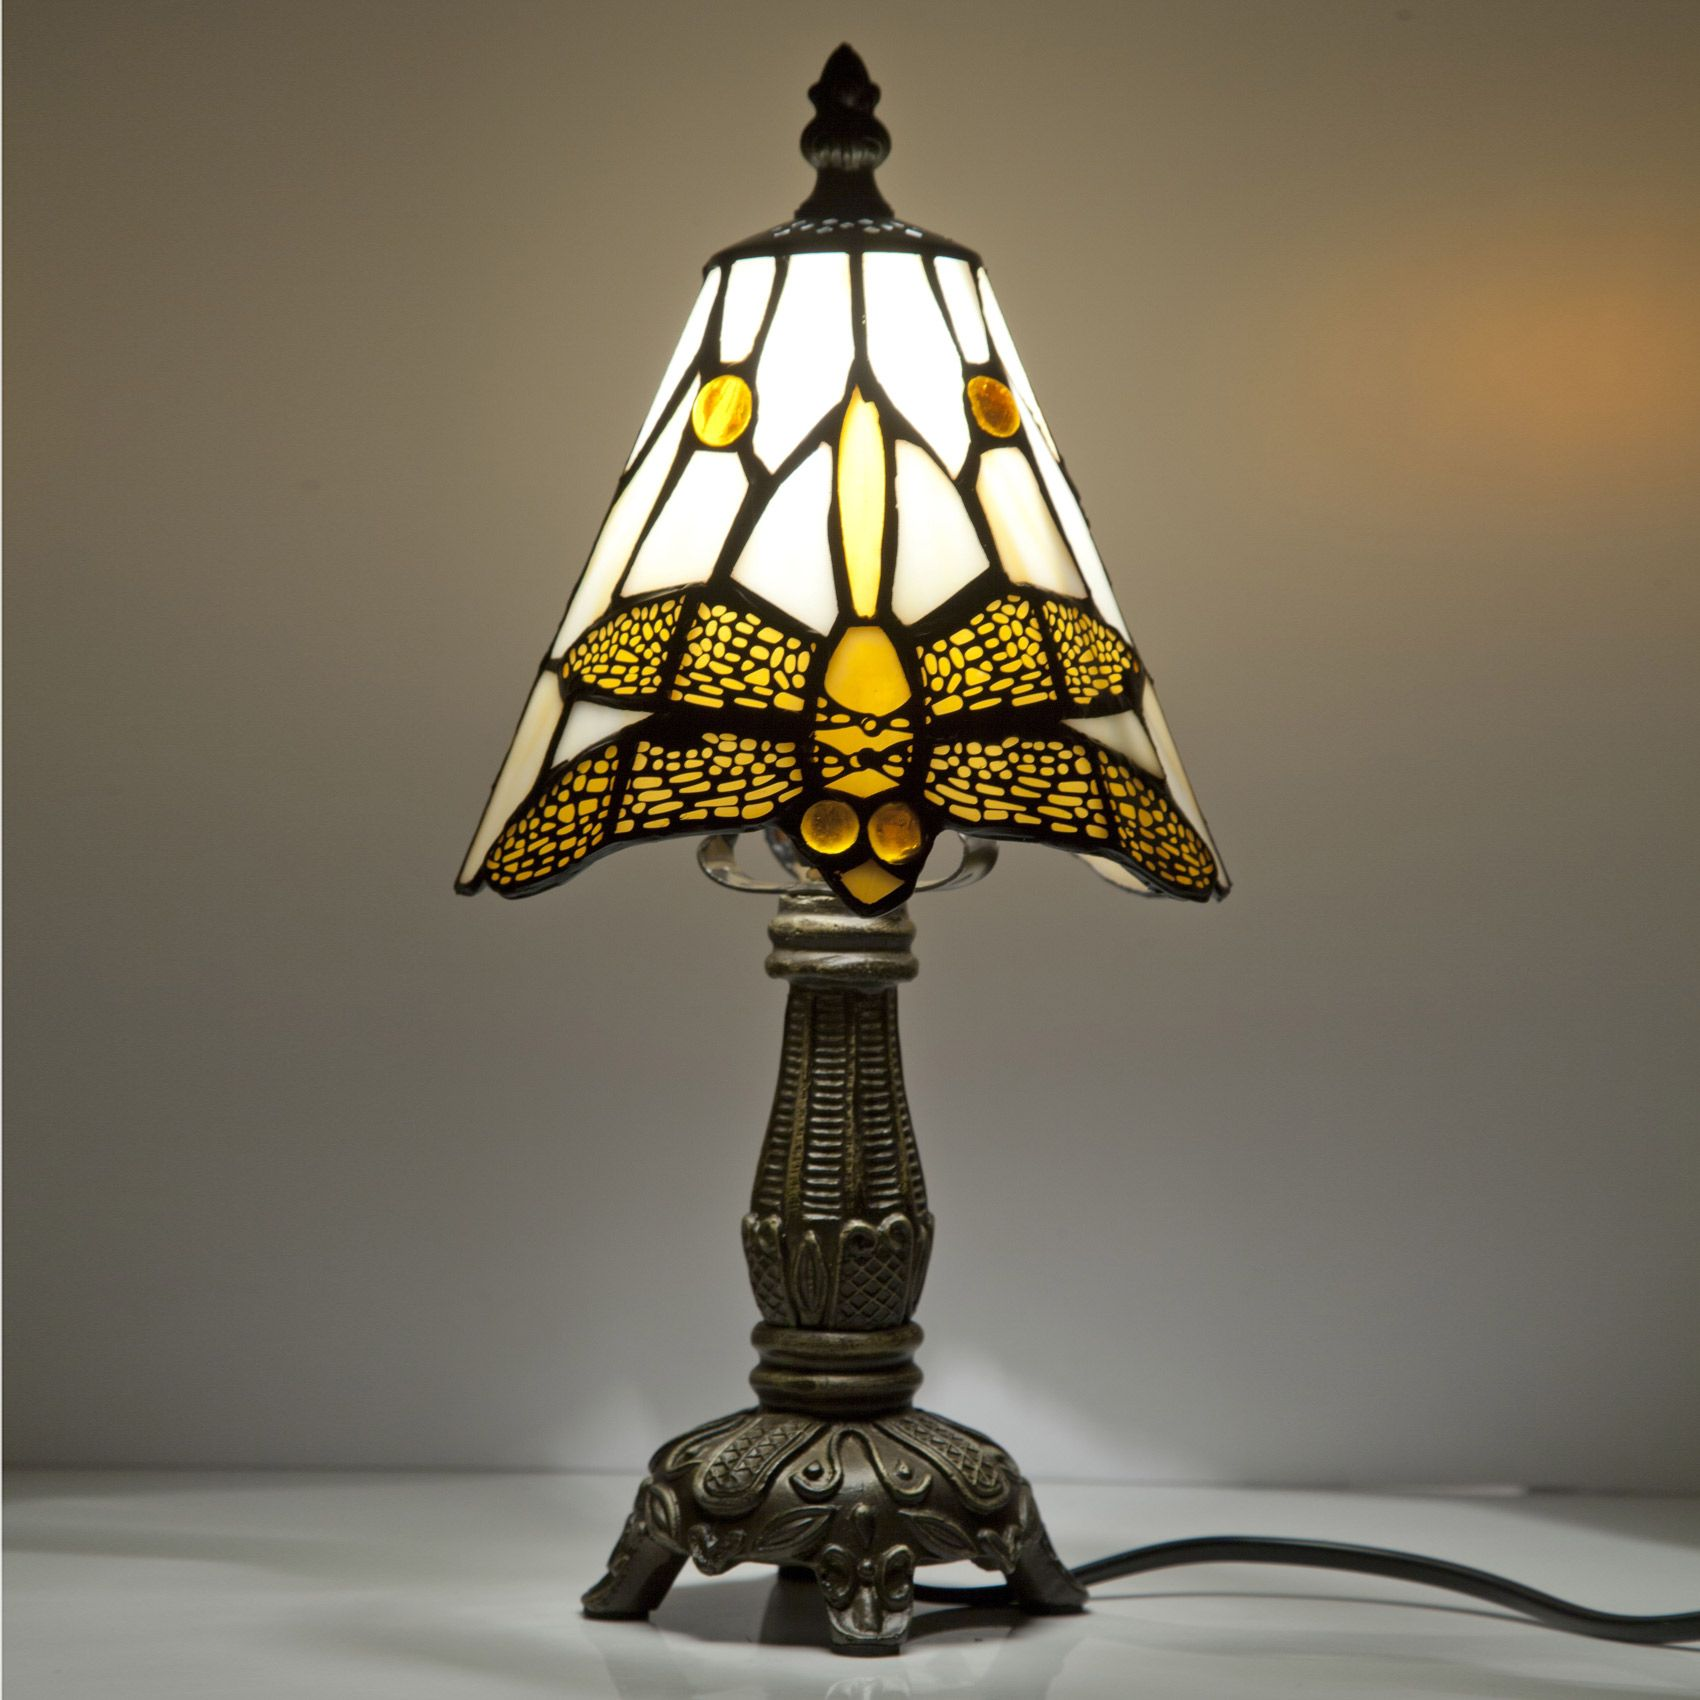 Luxury Small Lamp Amazon 98 For With Small Lamp Amazon